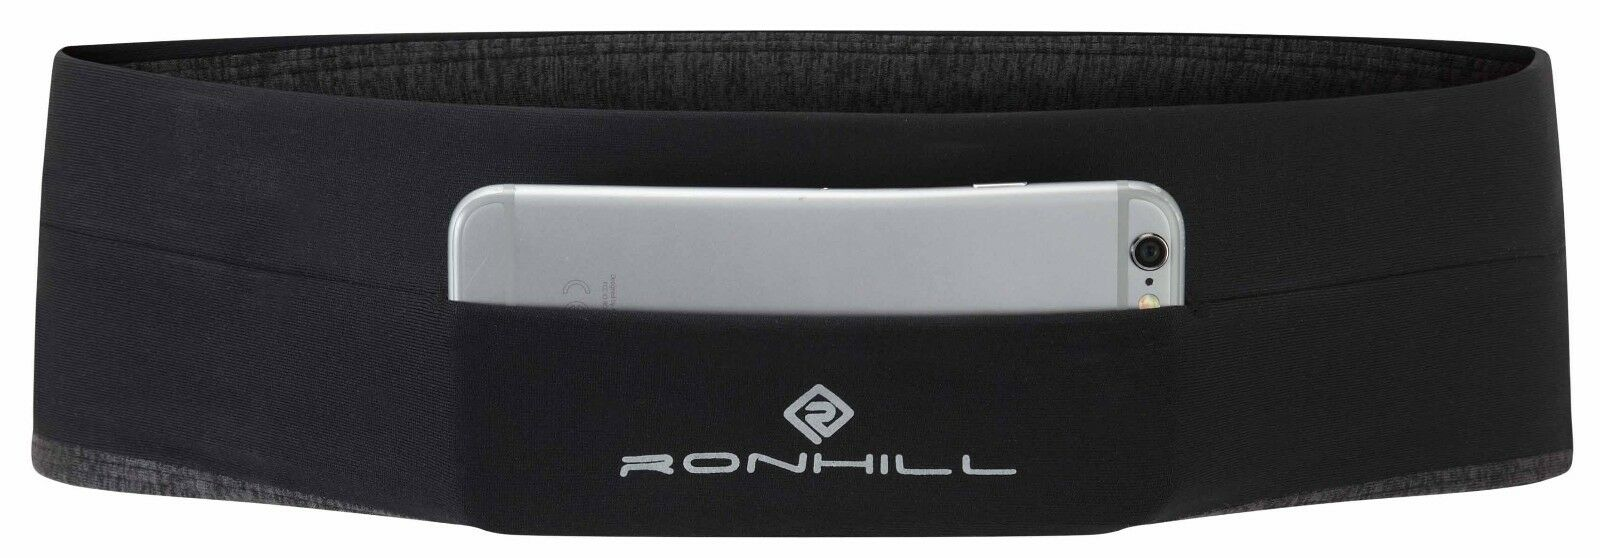 Ronhill Additions Stretch Waist Pocket Breathable Running Phone Storage Pouch